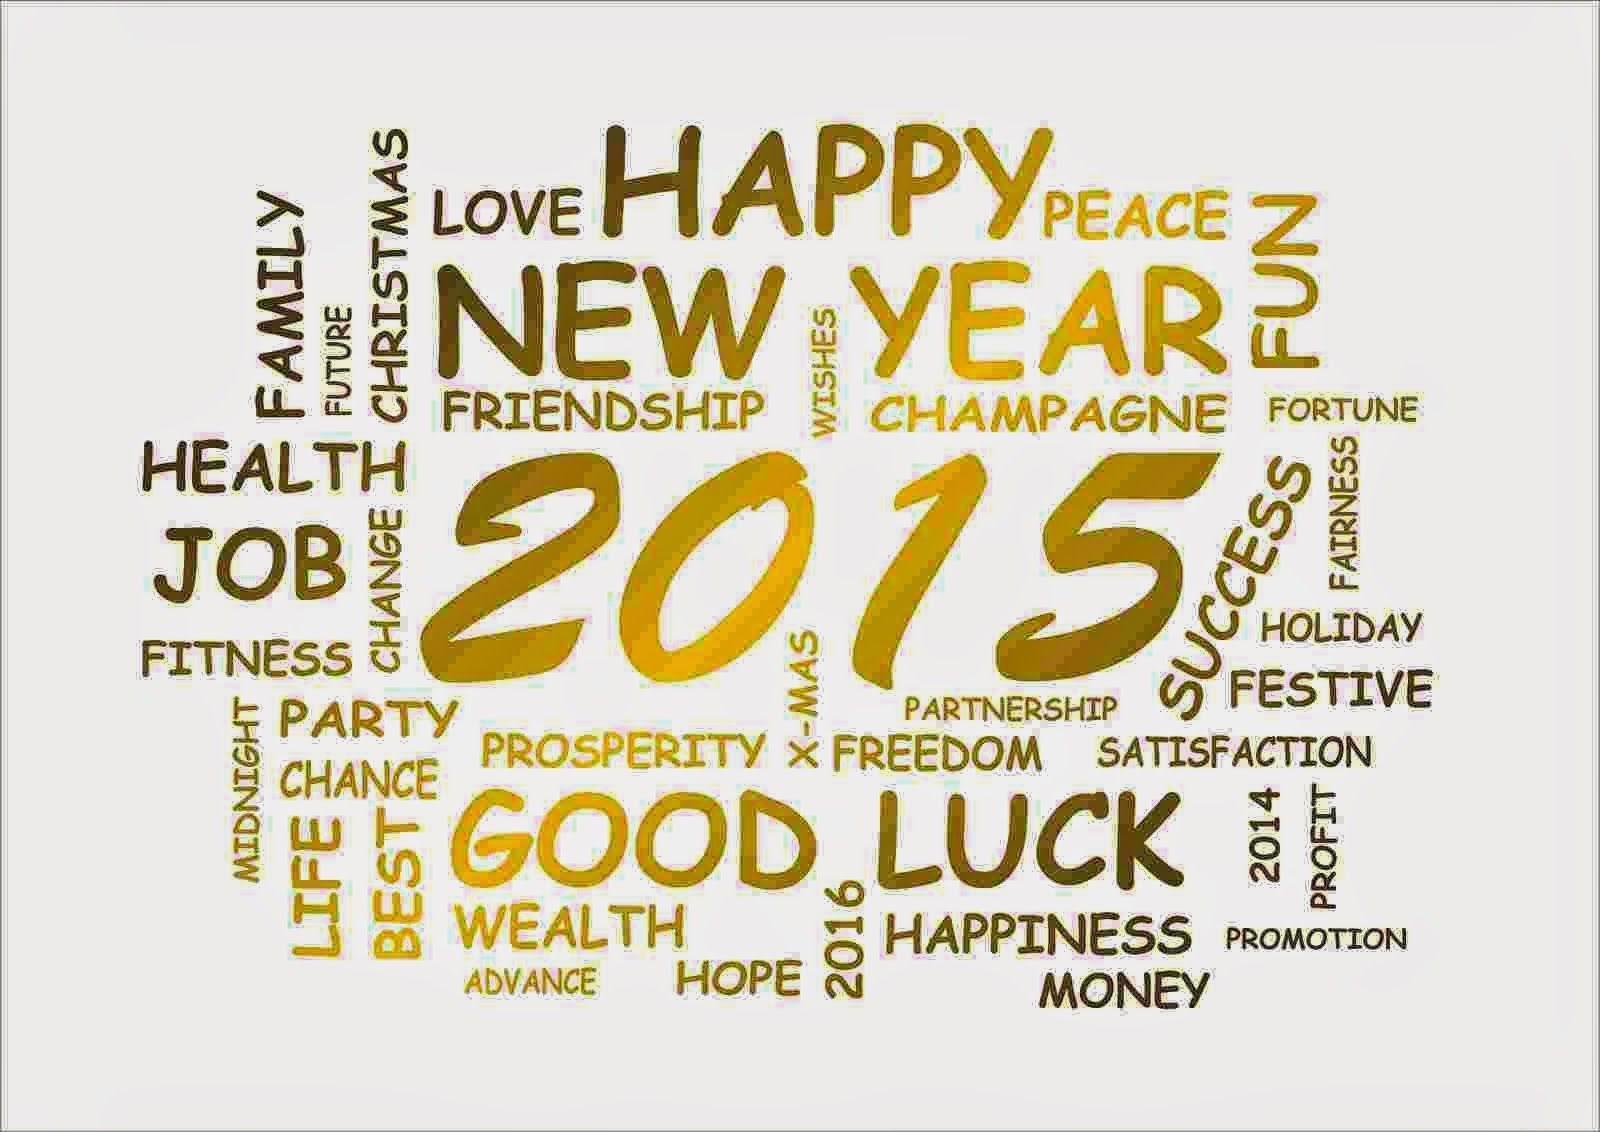 Happy New year 2015 wishes messages greeting cards Images Funny ...